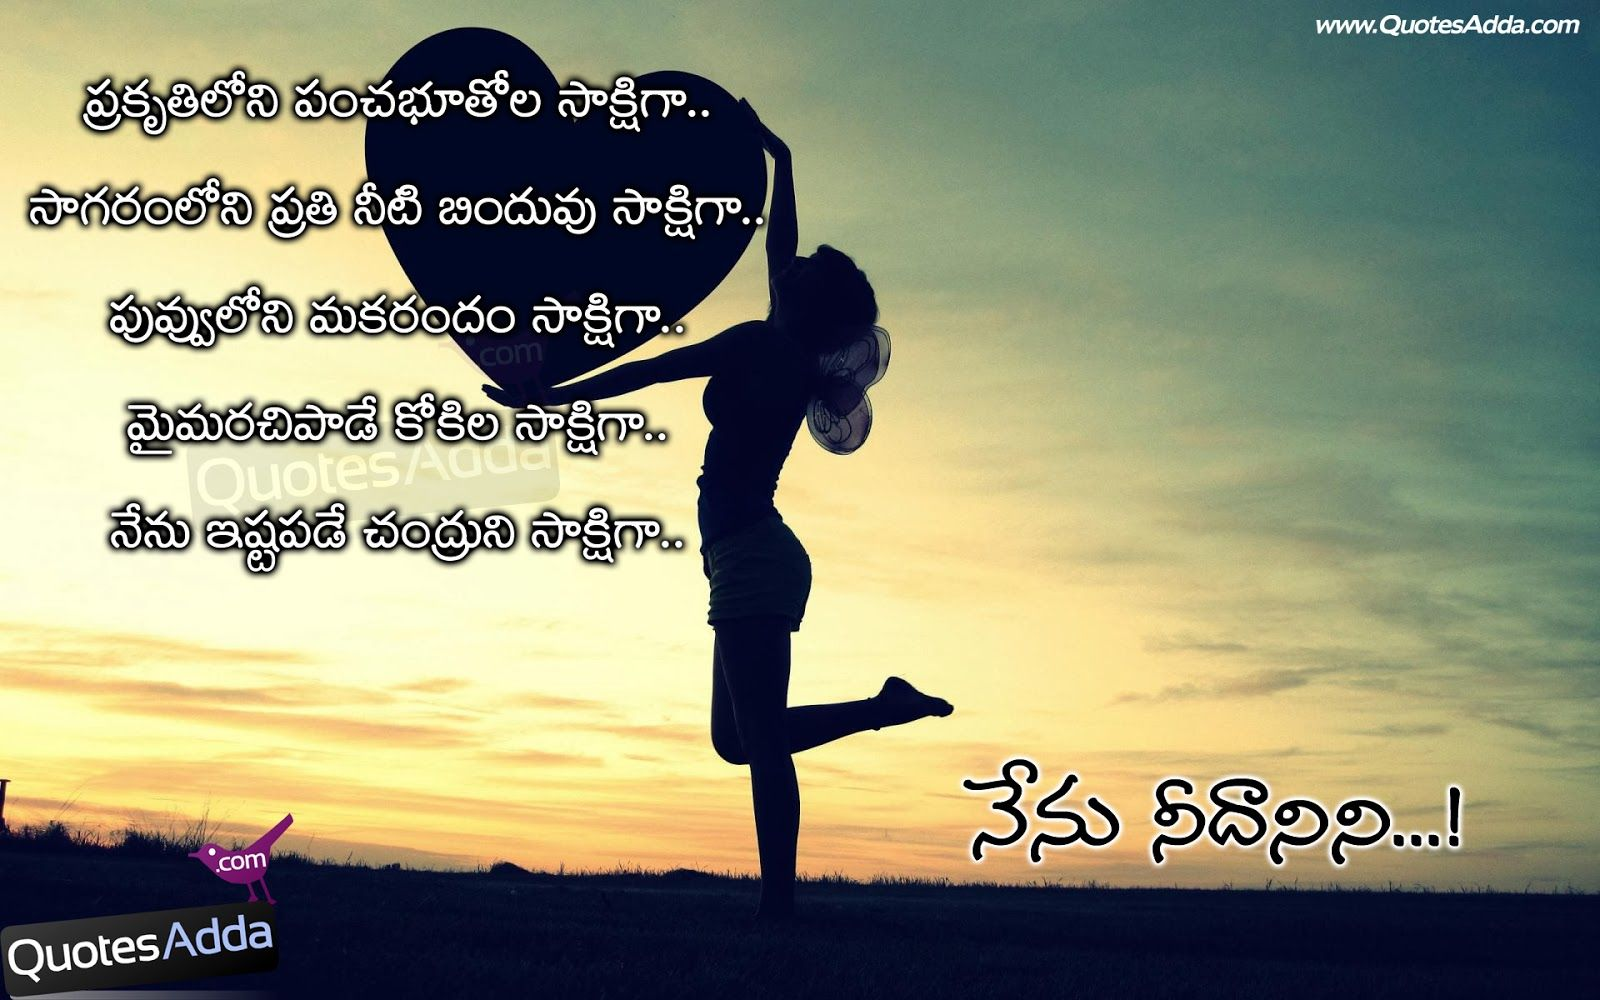 tamil love quotes for her in english wediecec3 in love